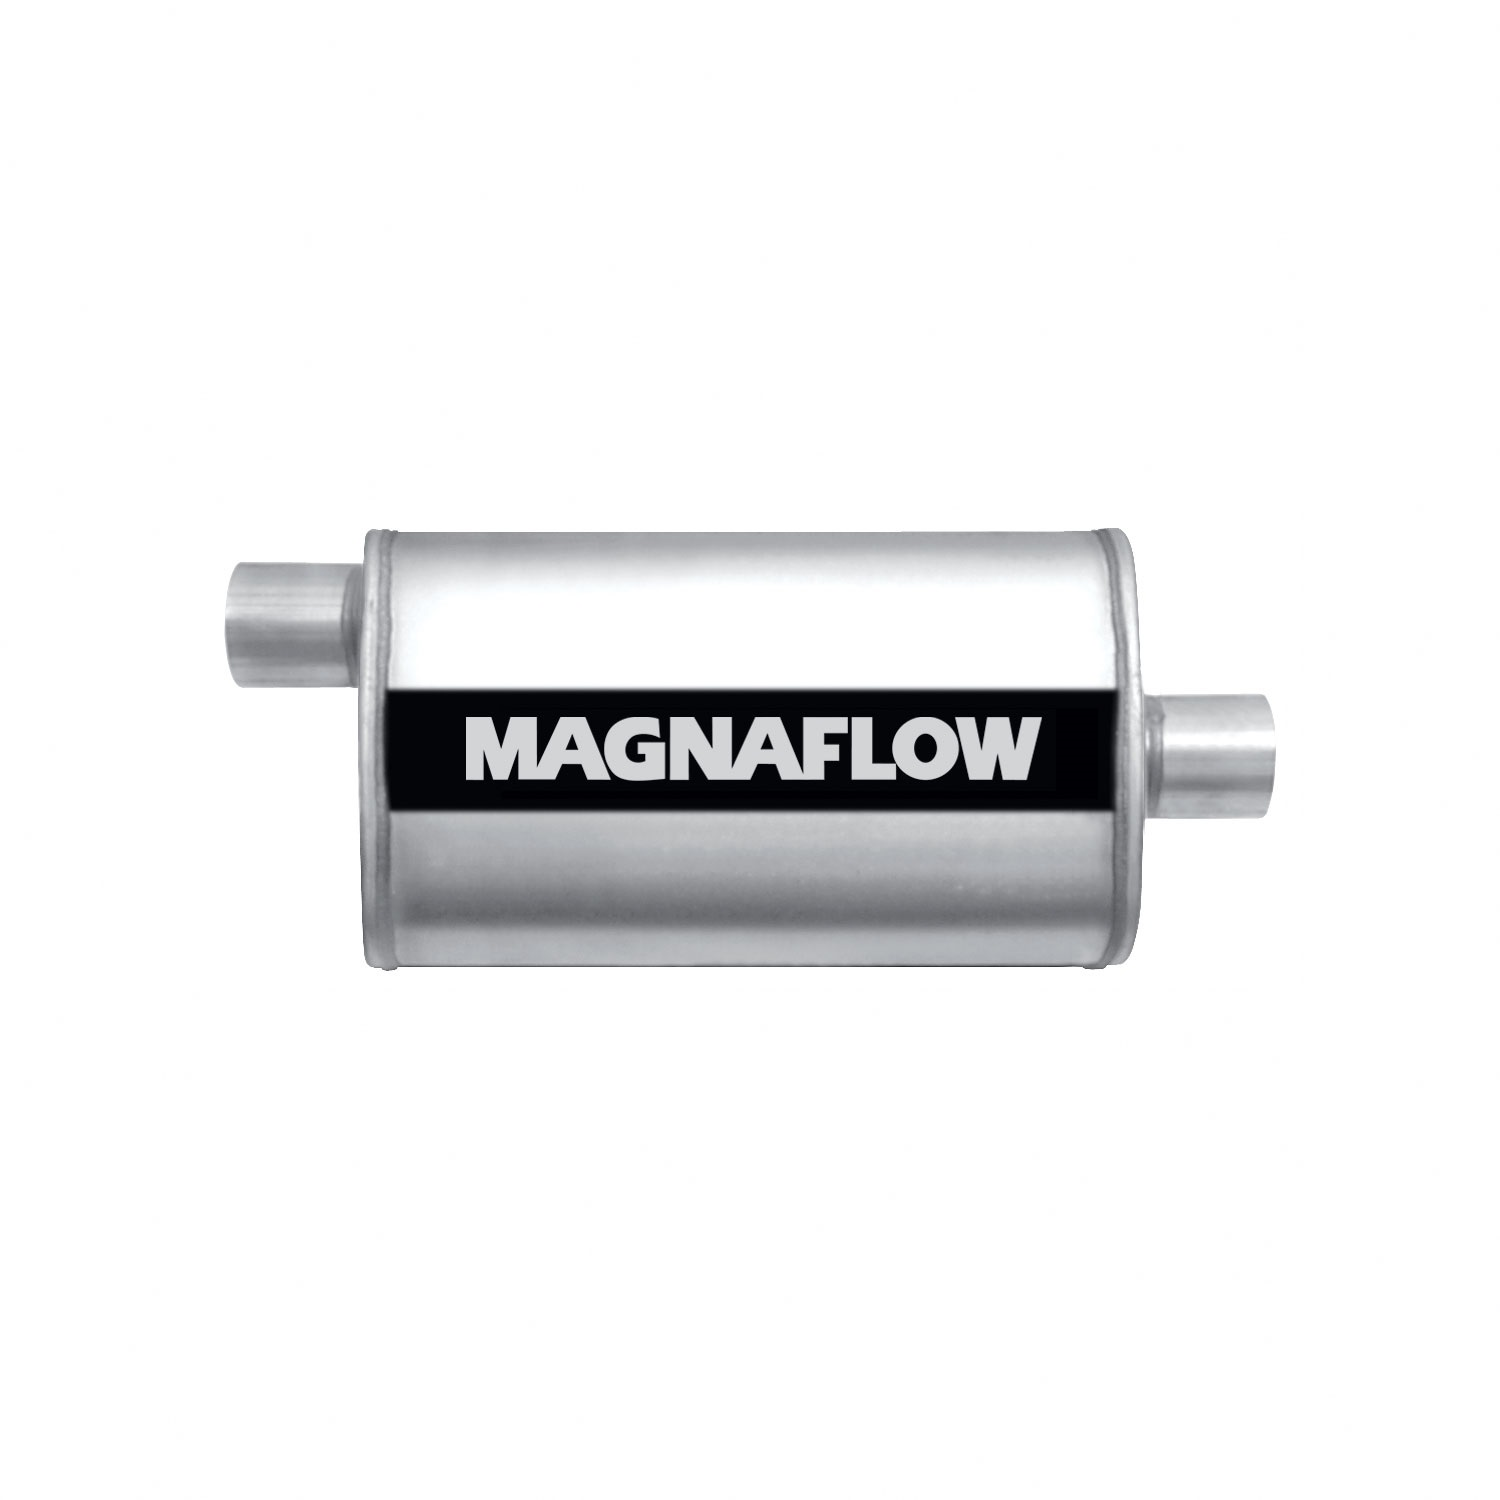 Magnaflow exhaust sounds for trucks apologise